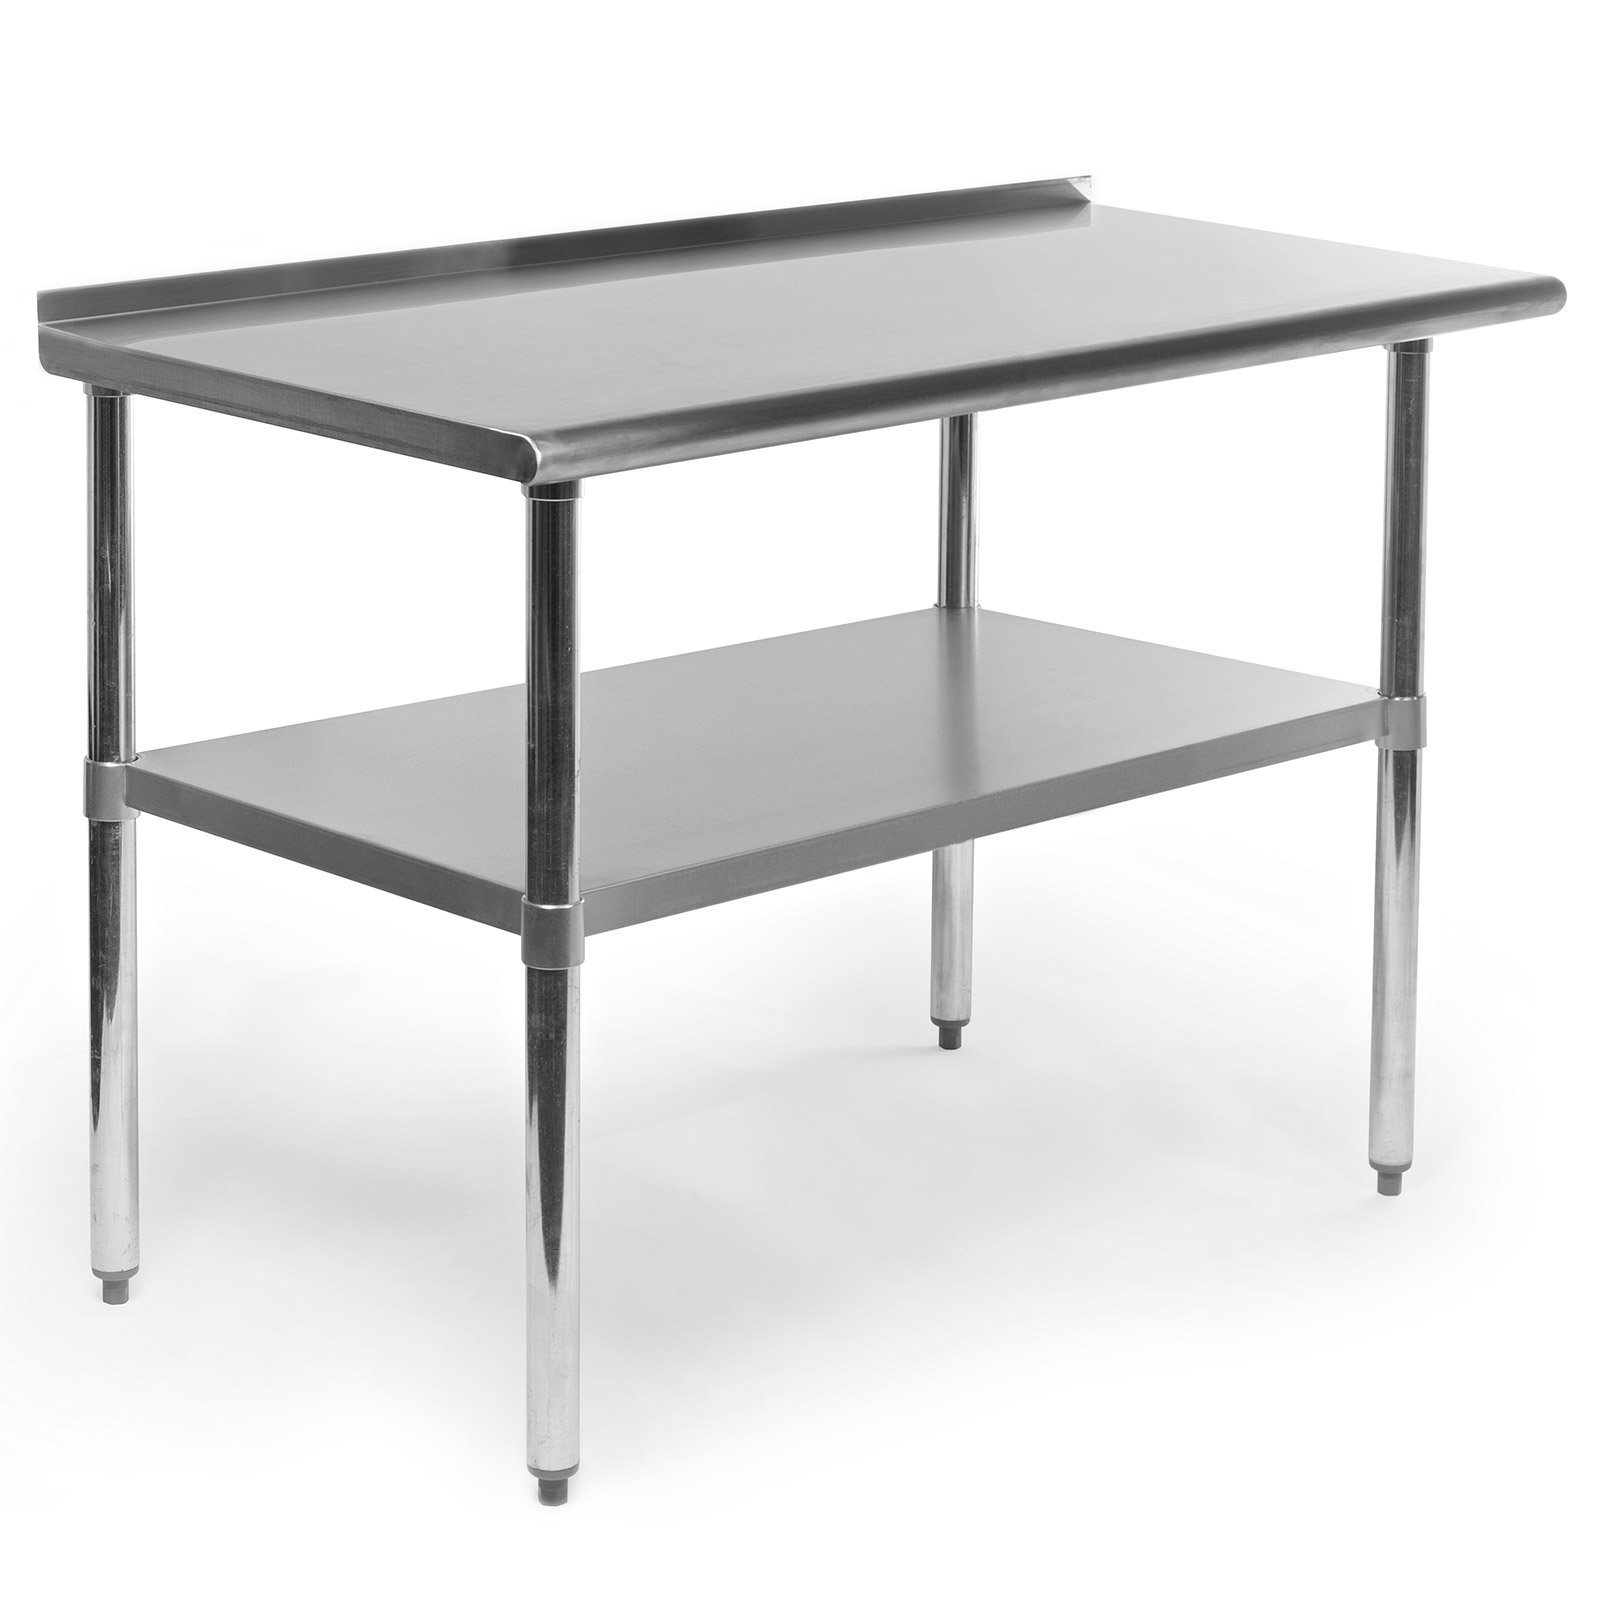 GRIDMANN NSF Stainless Steel Commercial Kitchen Prep & Work Table with Backsplash - 48 in. x 24 in. (Renewed) by GRIDMANN